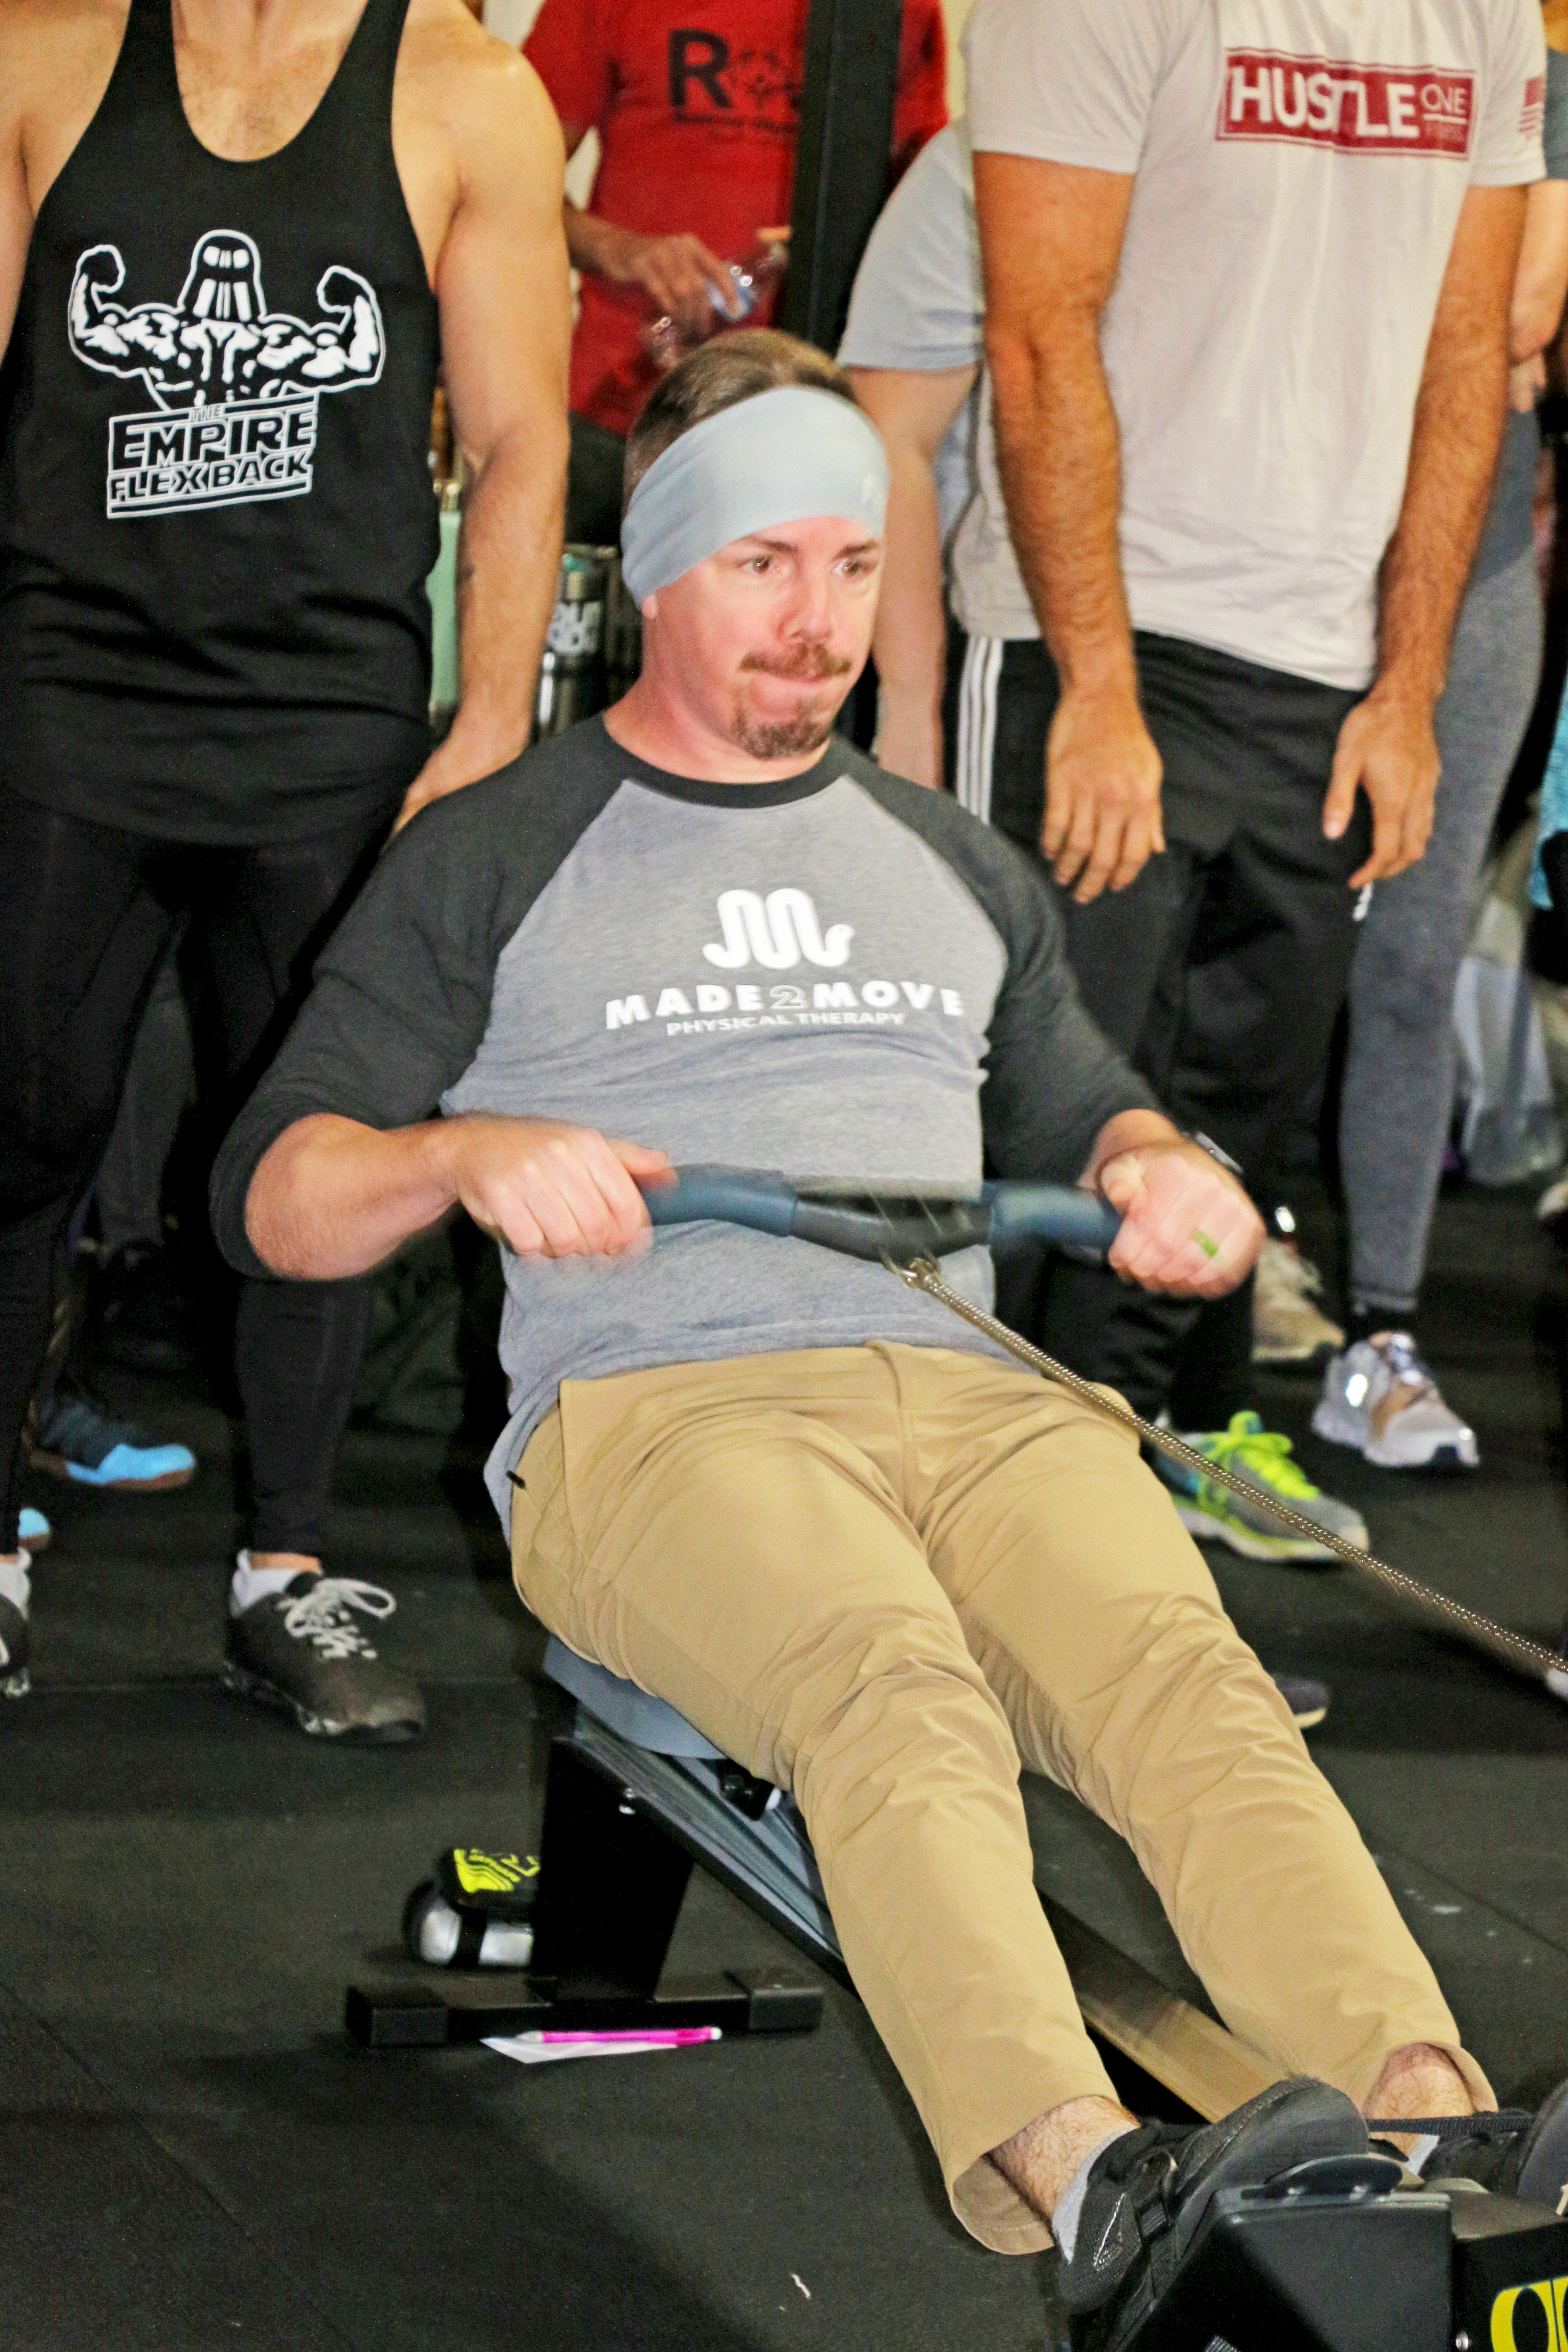 Made2Move athlete Dane Gifford helps row his team to a third place finish. Made2Move of Daniel Island was one of the event sponsors.